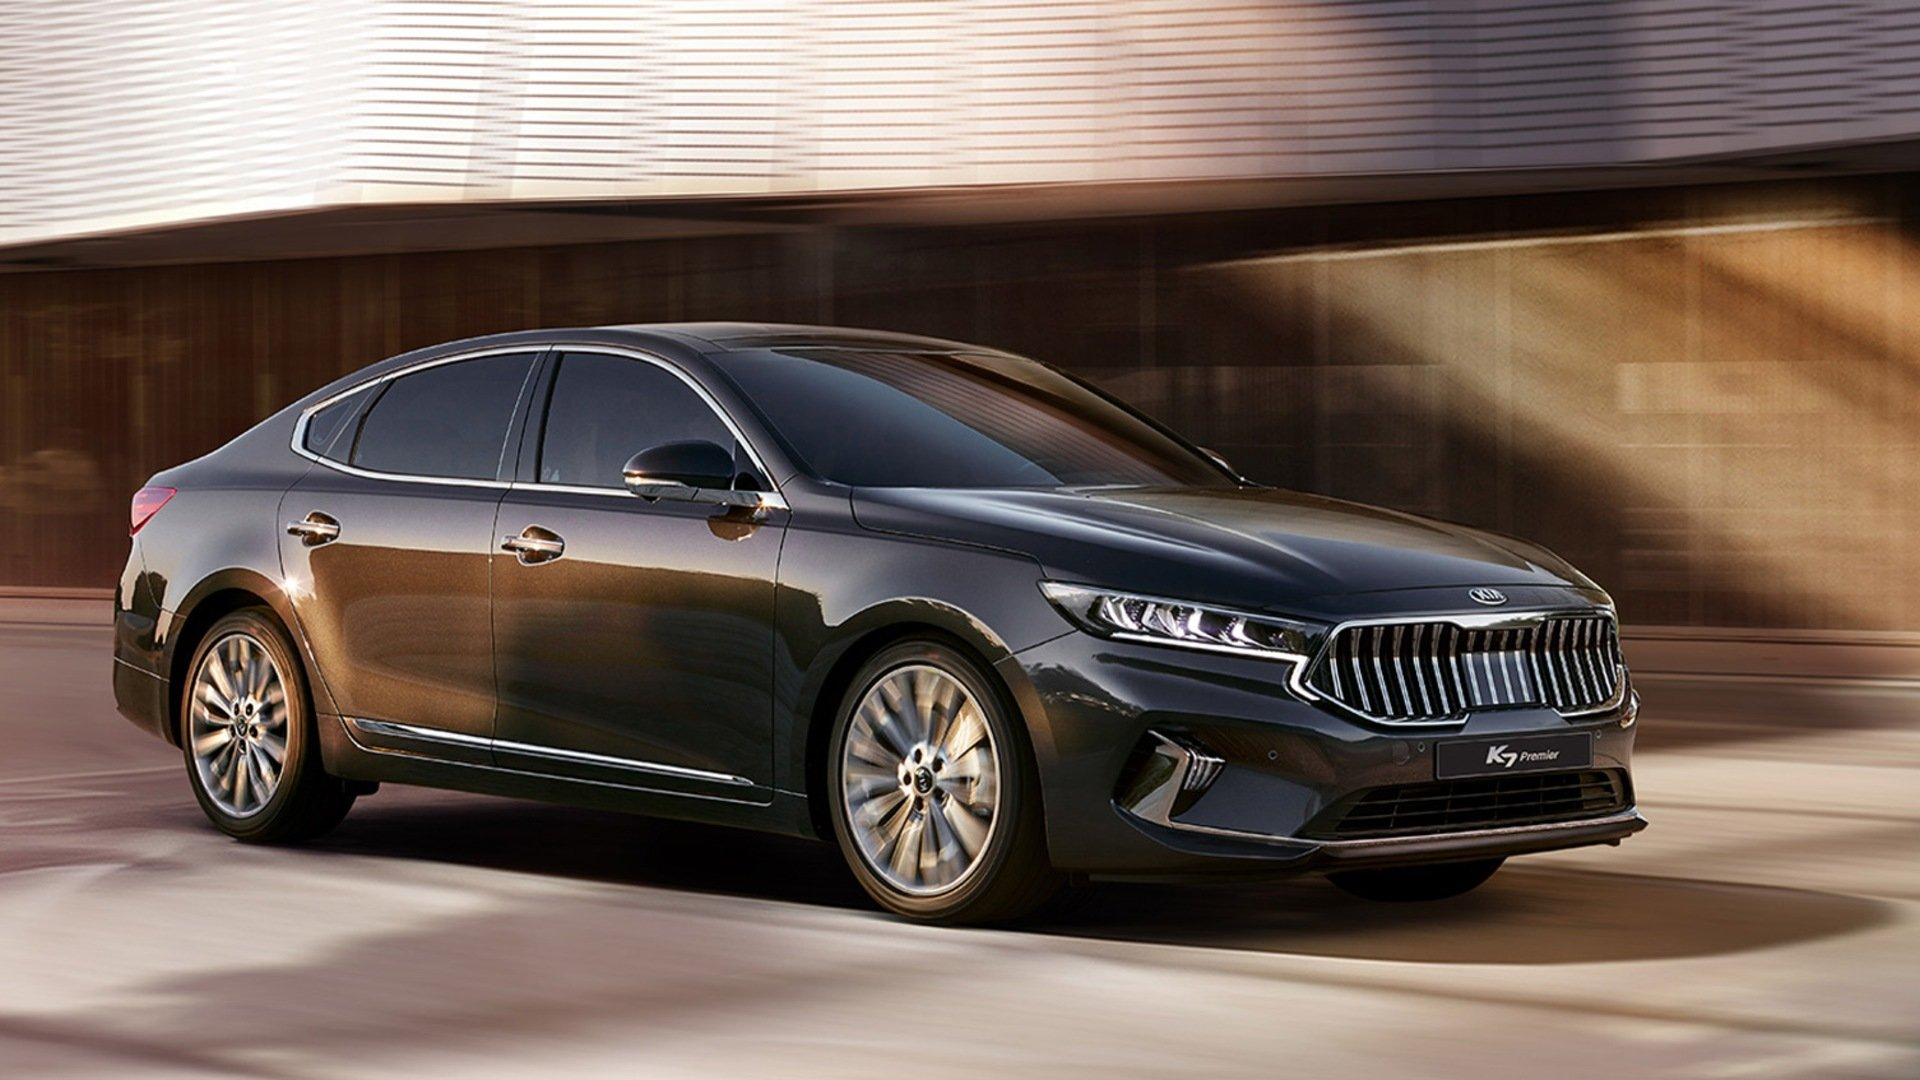 2020 Kia Cadenza: Review, Specs and Price in UAE ...